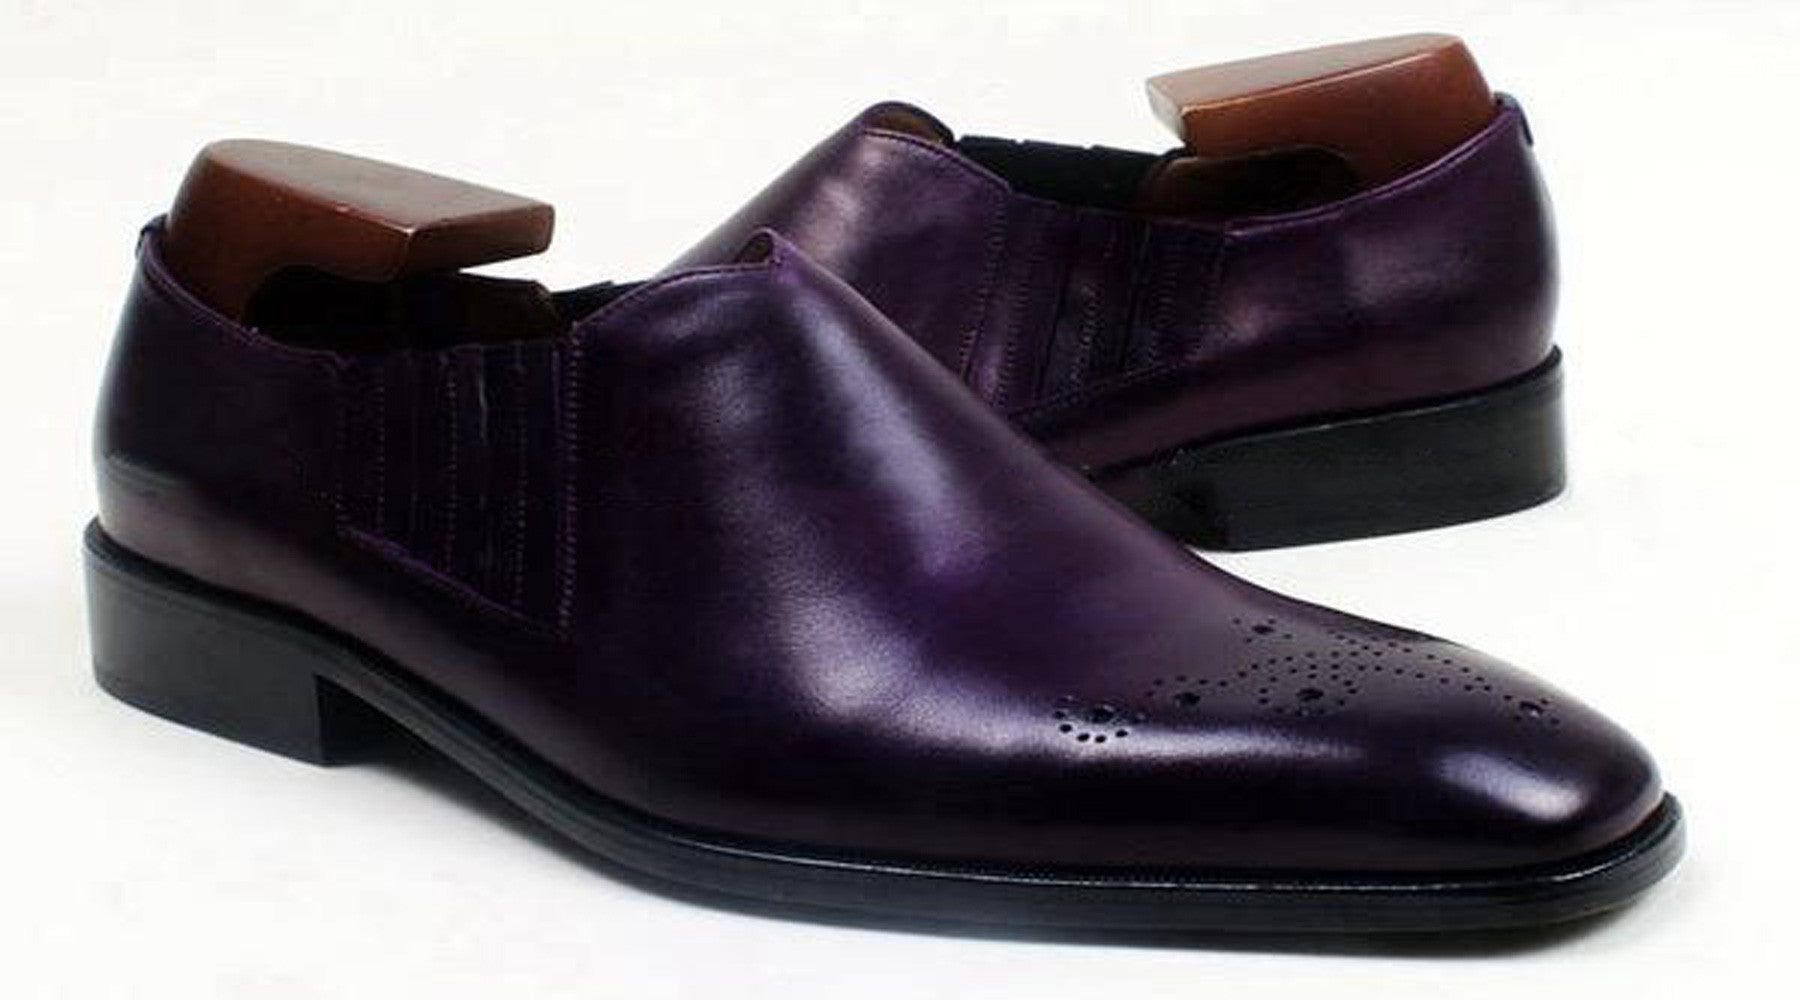 runit365 - Shoes Slip on Deep Purple [center]